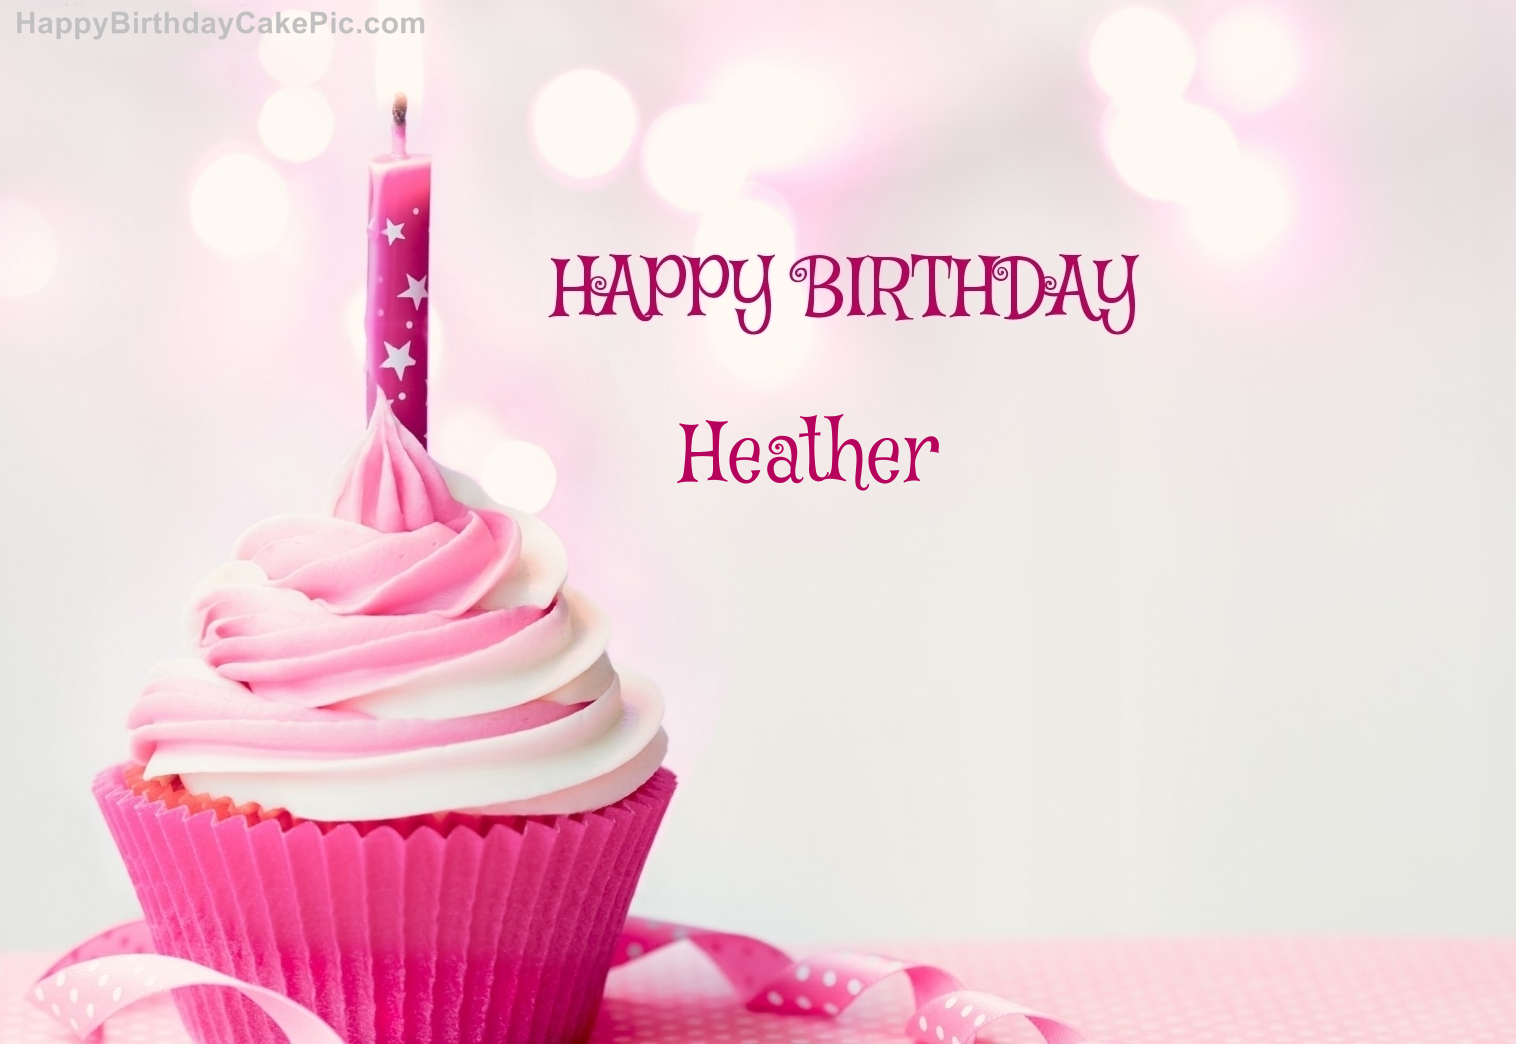 Happy Birthday Cupcake Candle Pink Cake For Heather